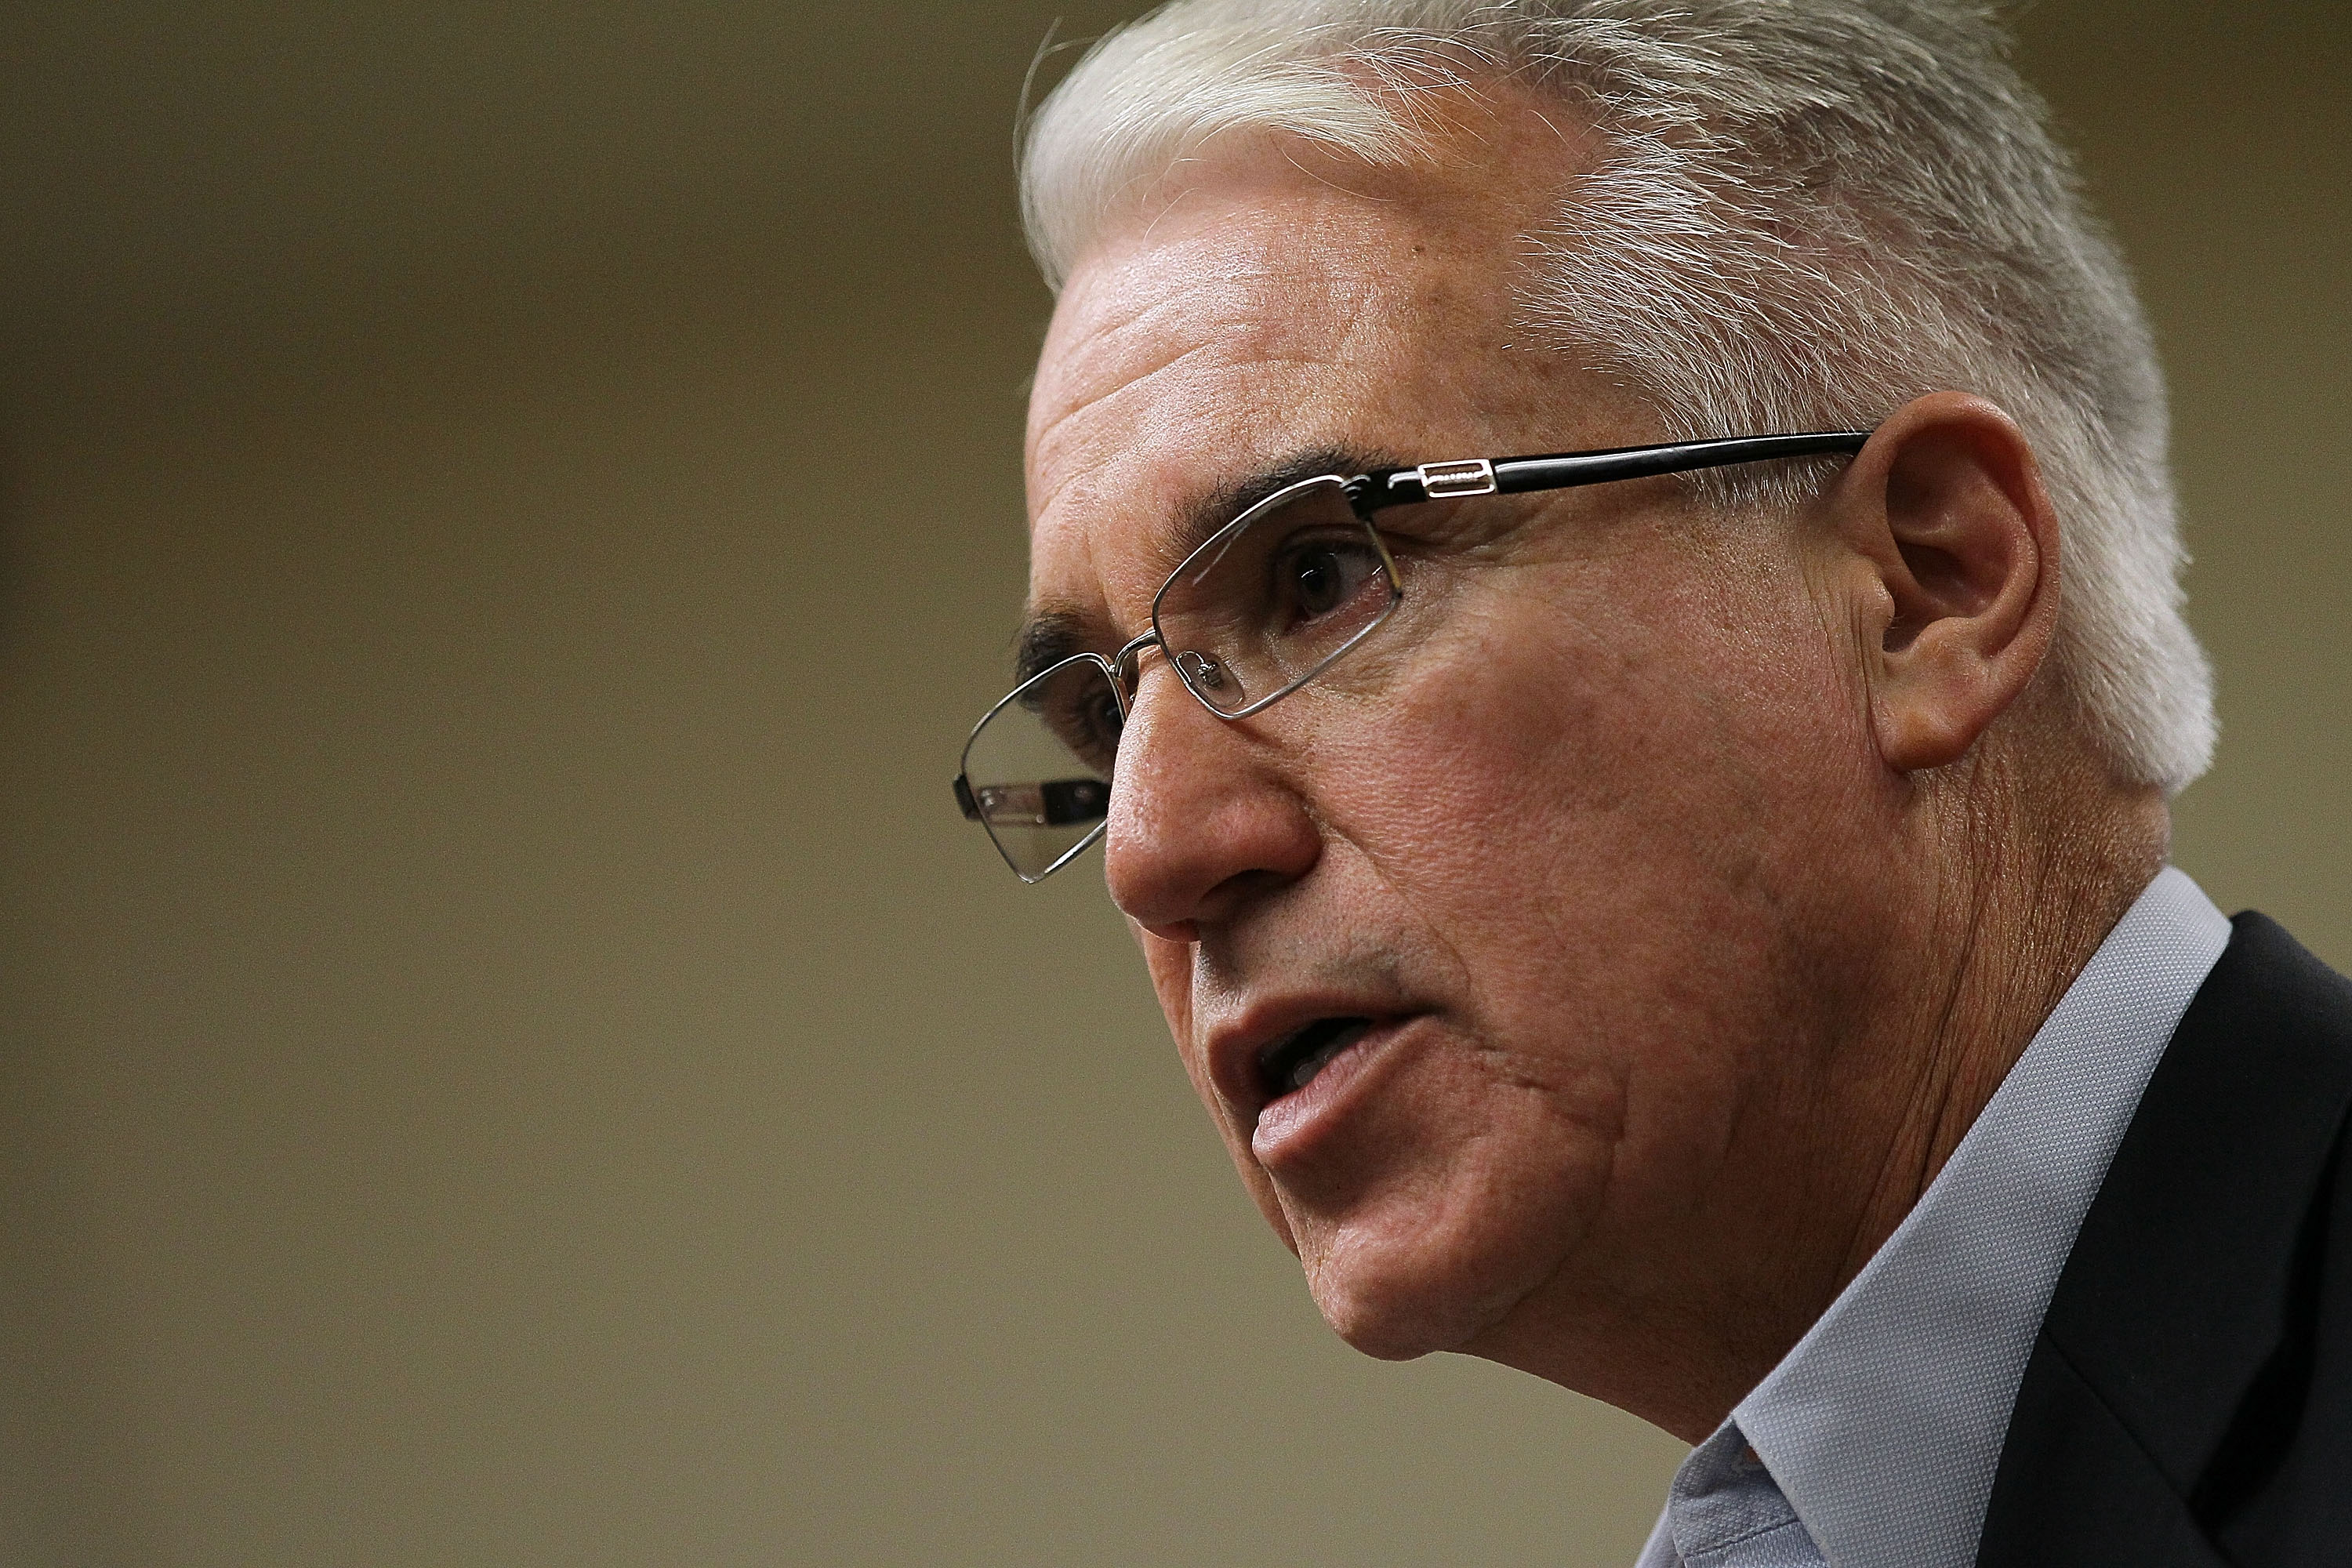 Los Angeles District Attorney George Gascon in San Francisco, California. (Photo by Justin Sullivan/Getty Images)